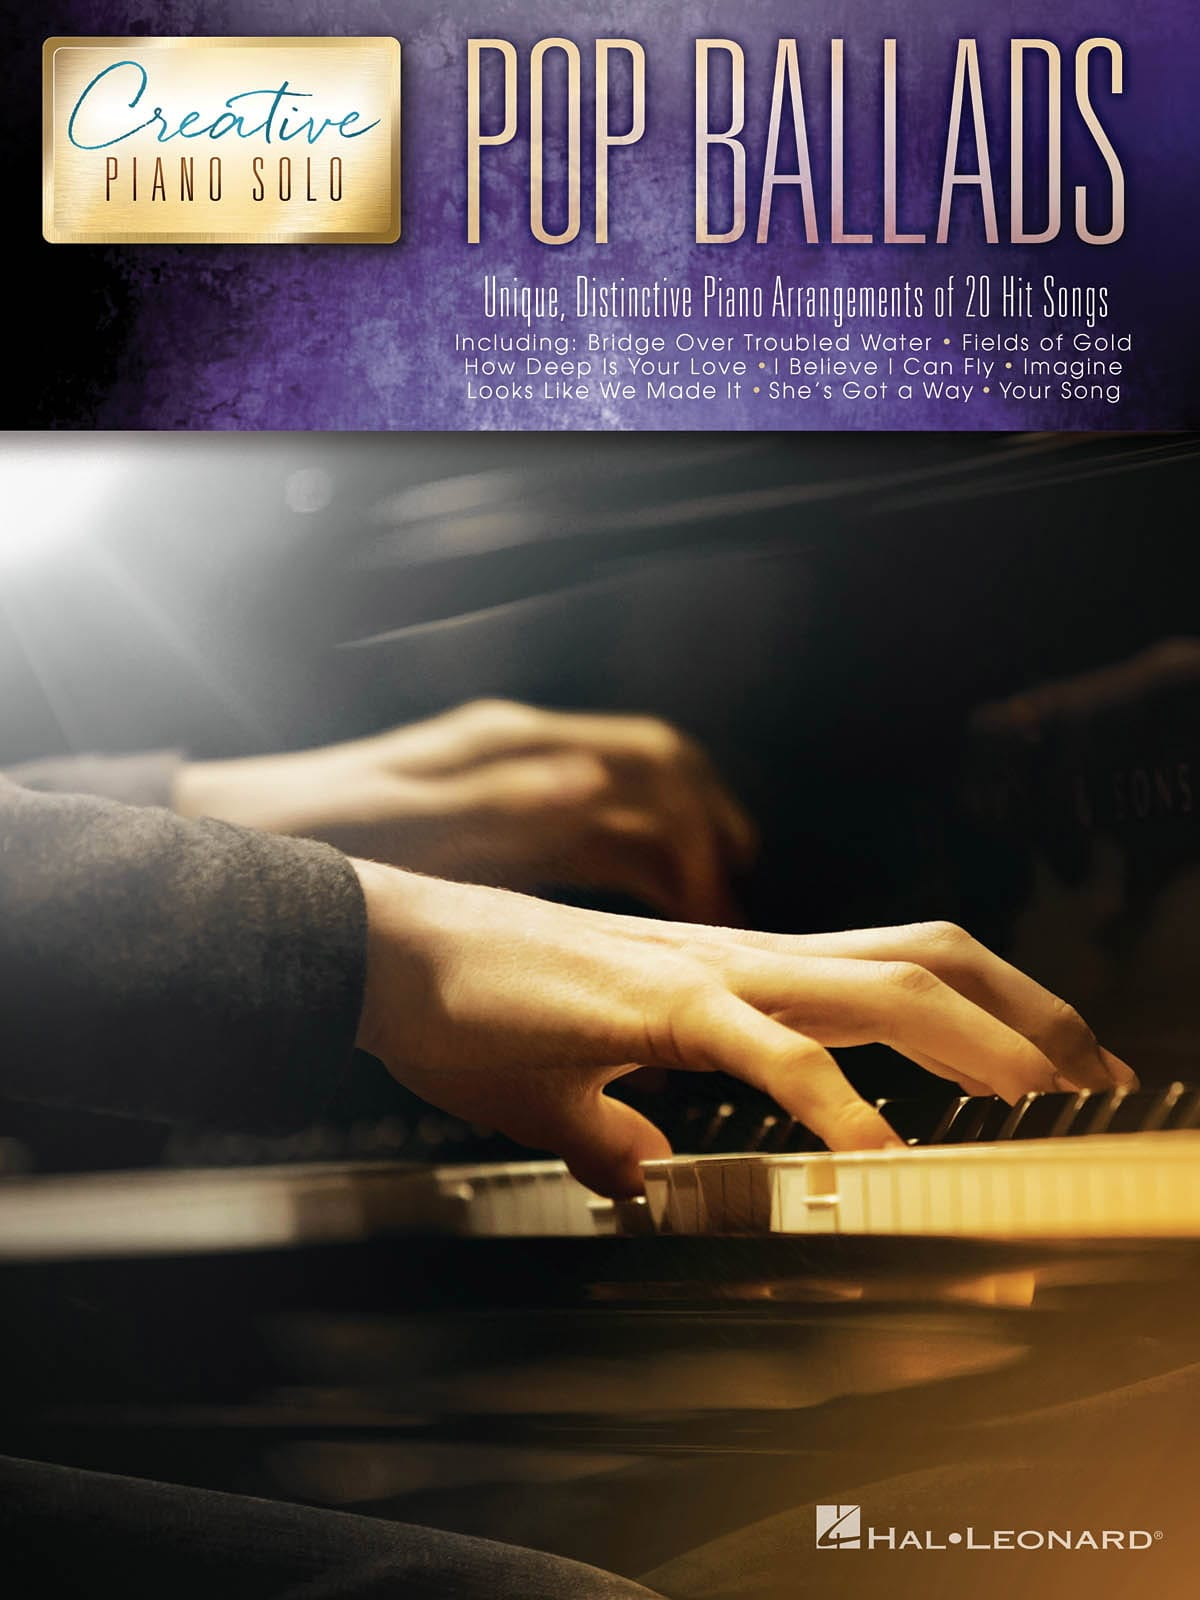 Creative Piano Solo - Pop Ballads - Partition - laflutedepan.com